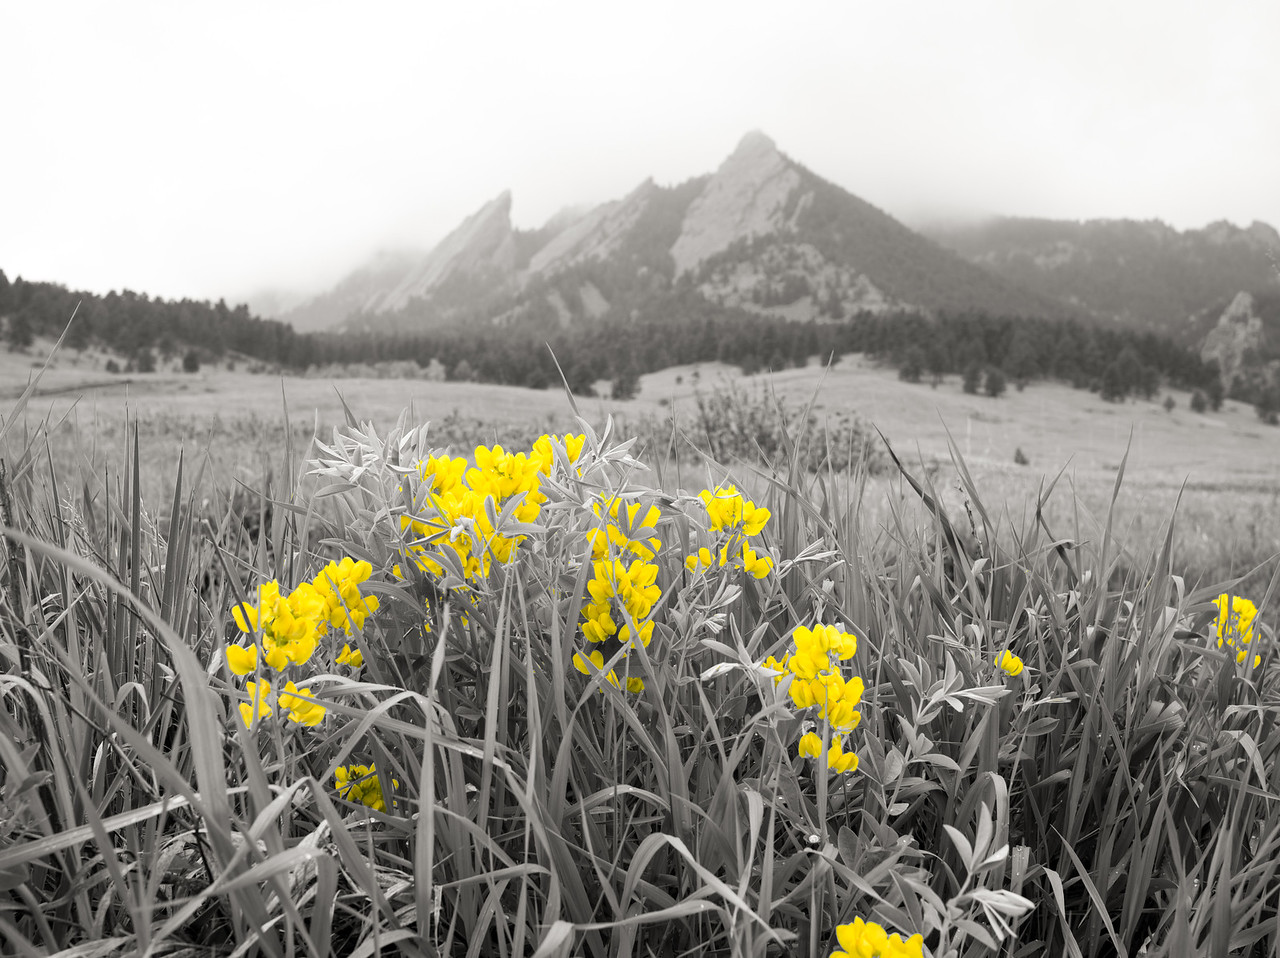 SELECTIVE COLOR 1 OF 2